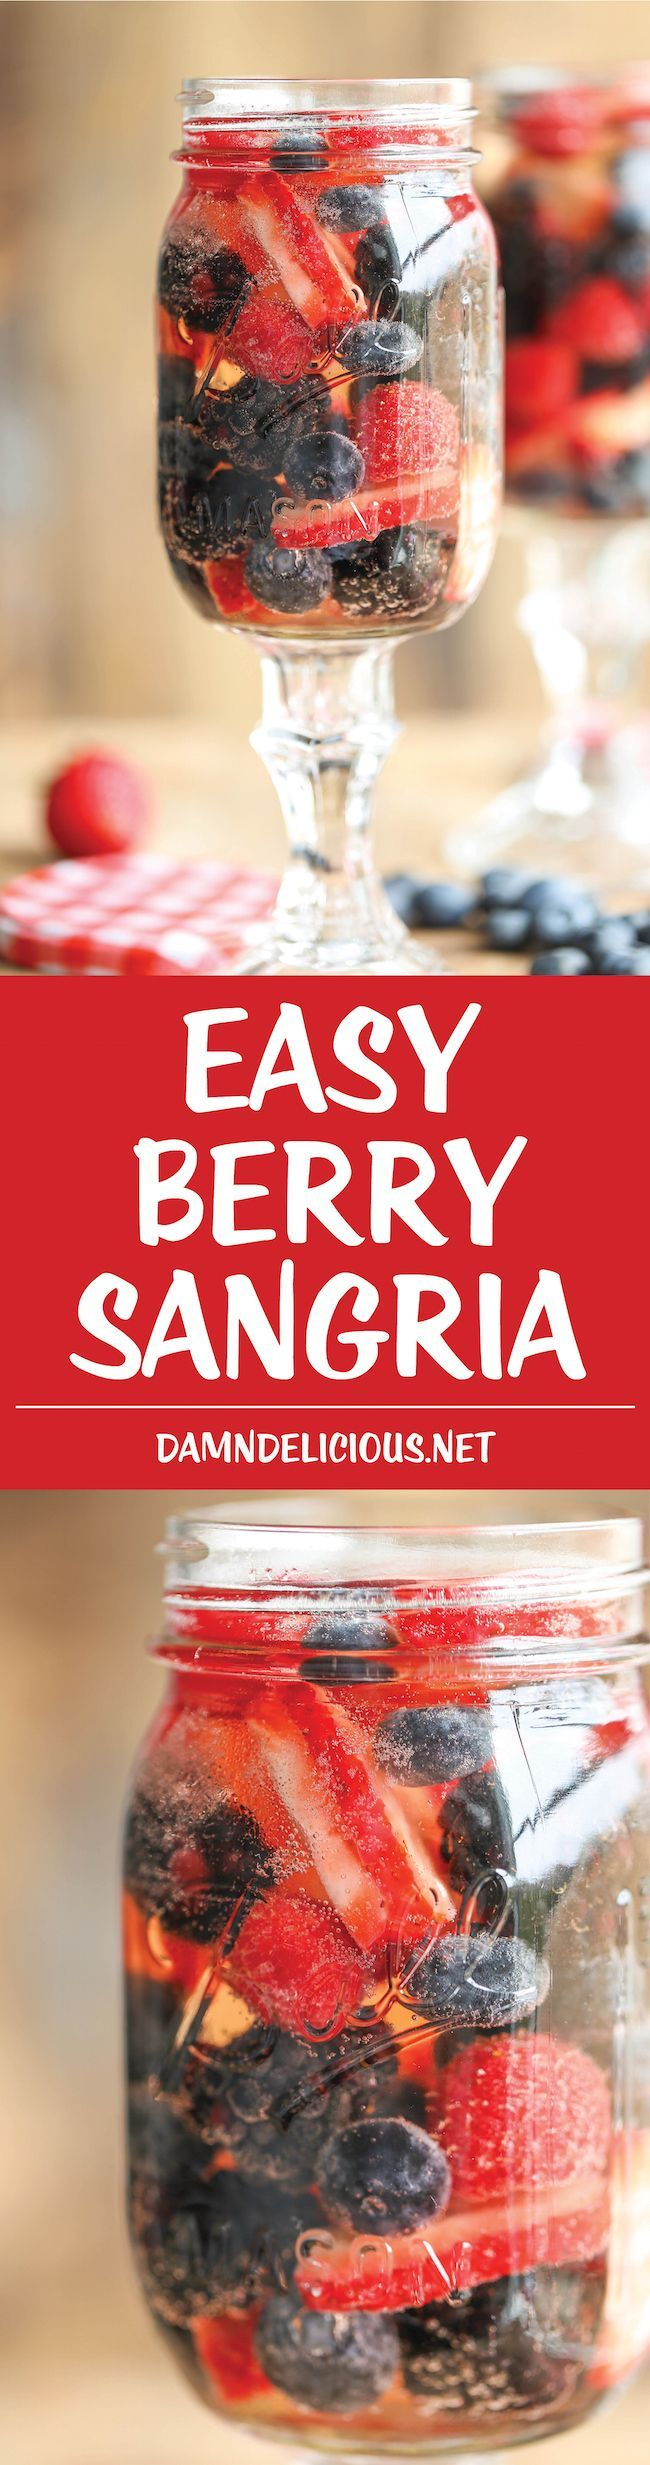 Easy Berry Sangria - So easy and refreshing, chockfull of strawberries, raspberries, blackberries and blueberries. And all you need is just 5 min prep!